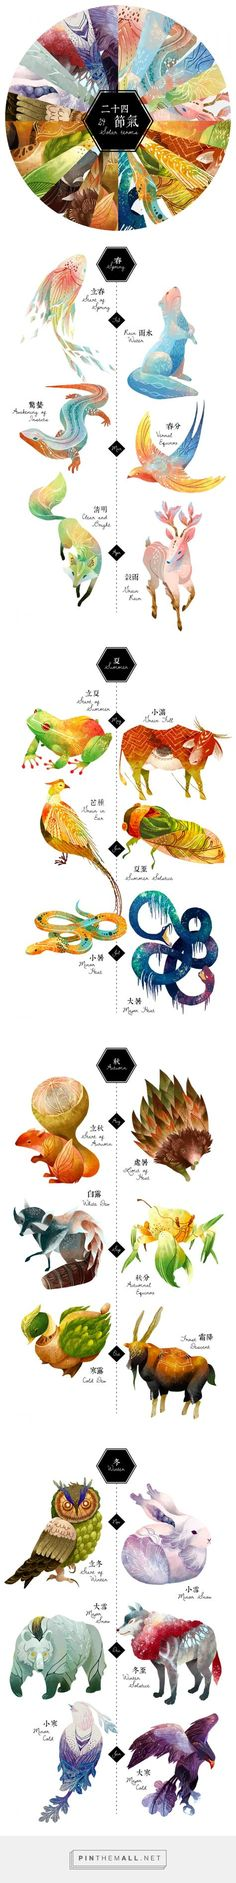 The 24 Solar Terms - Character Design on Behance - created via https://pinthemall.net